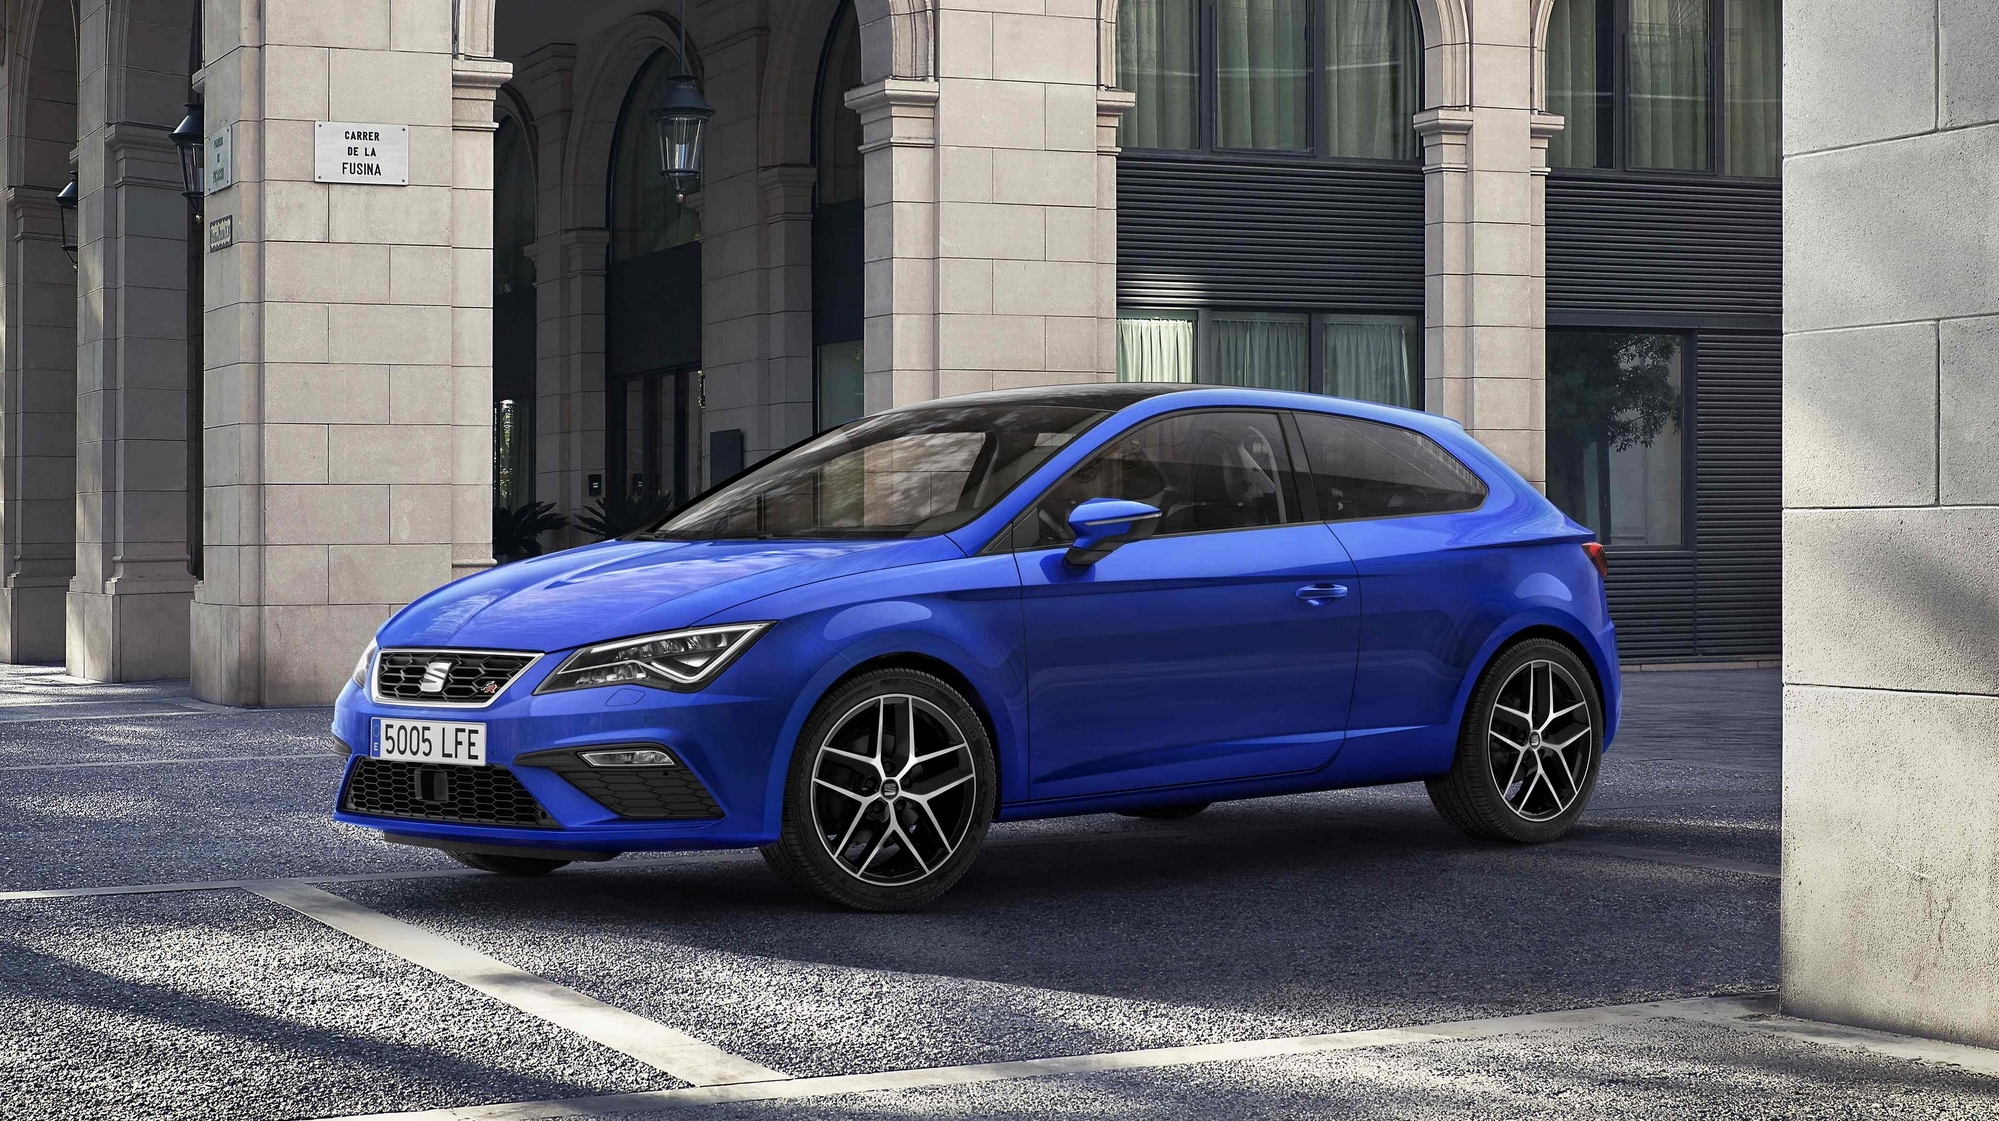 """The 2020 Seat Leon Will Get Volkswagen Group's Newest """"industry Leading"""" Tech 